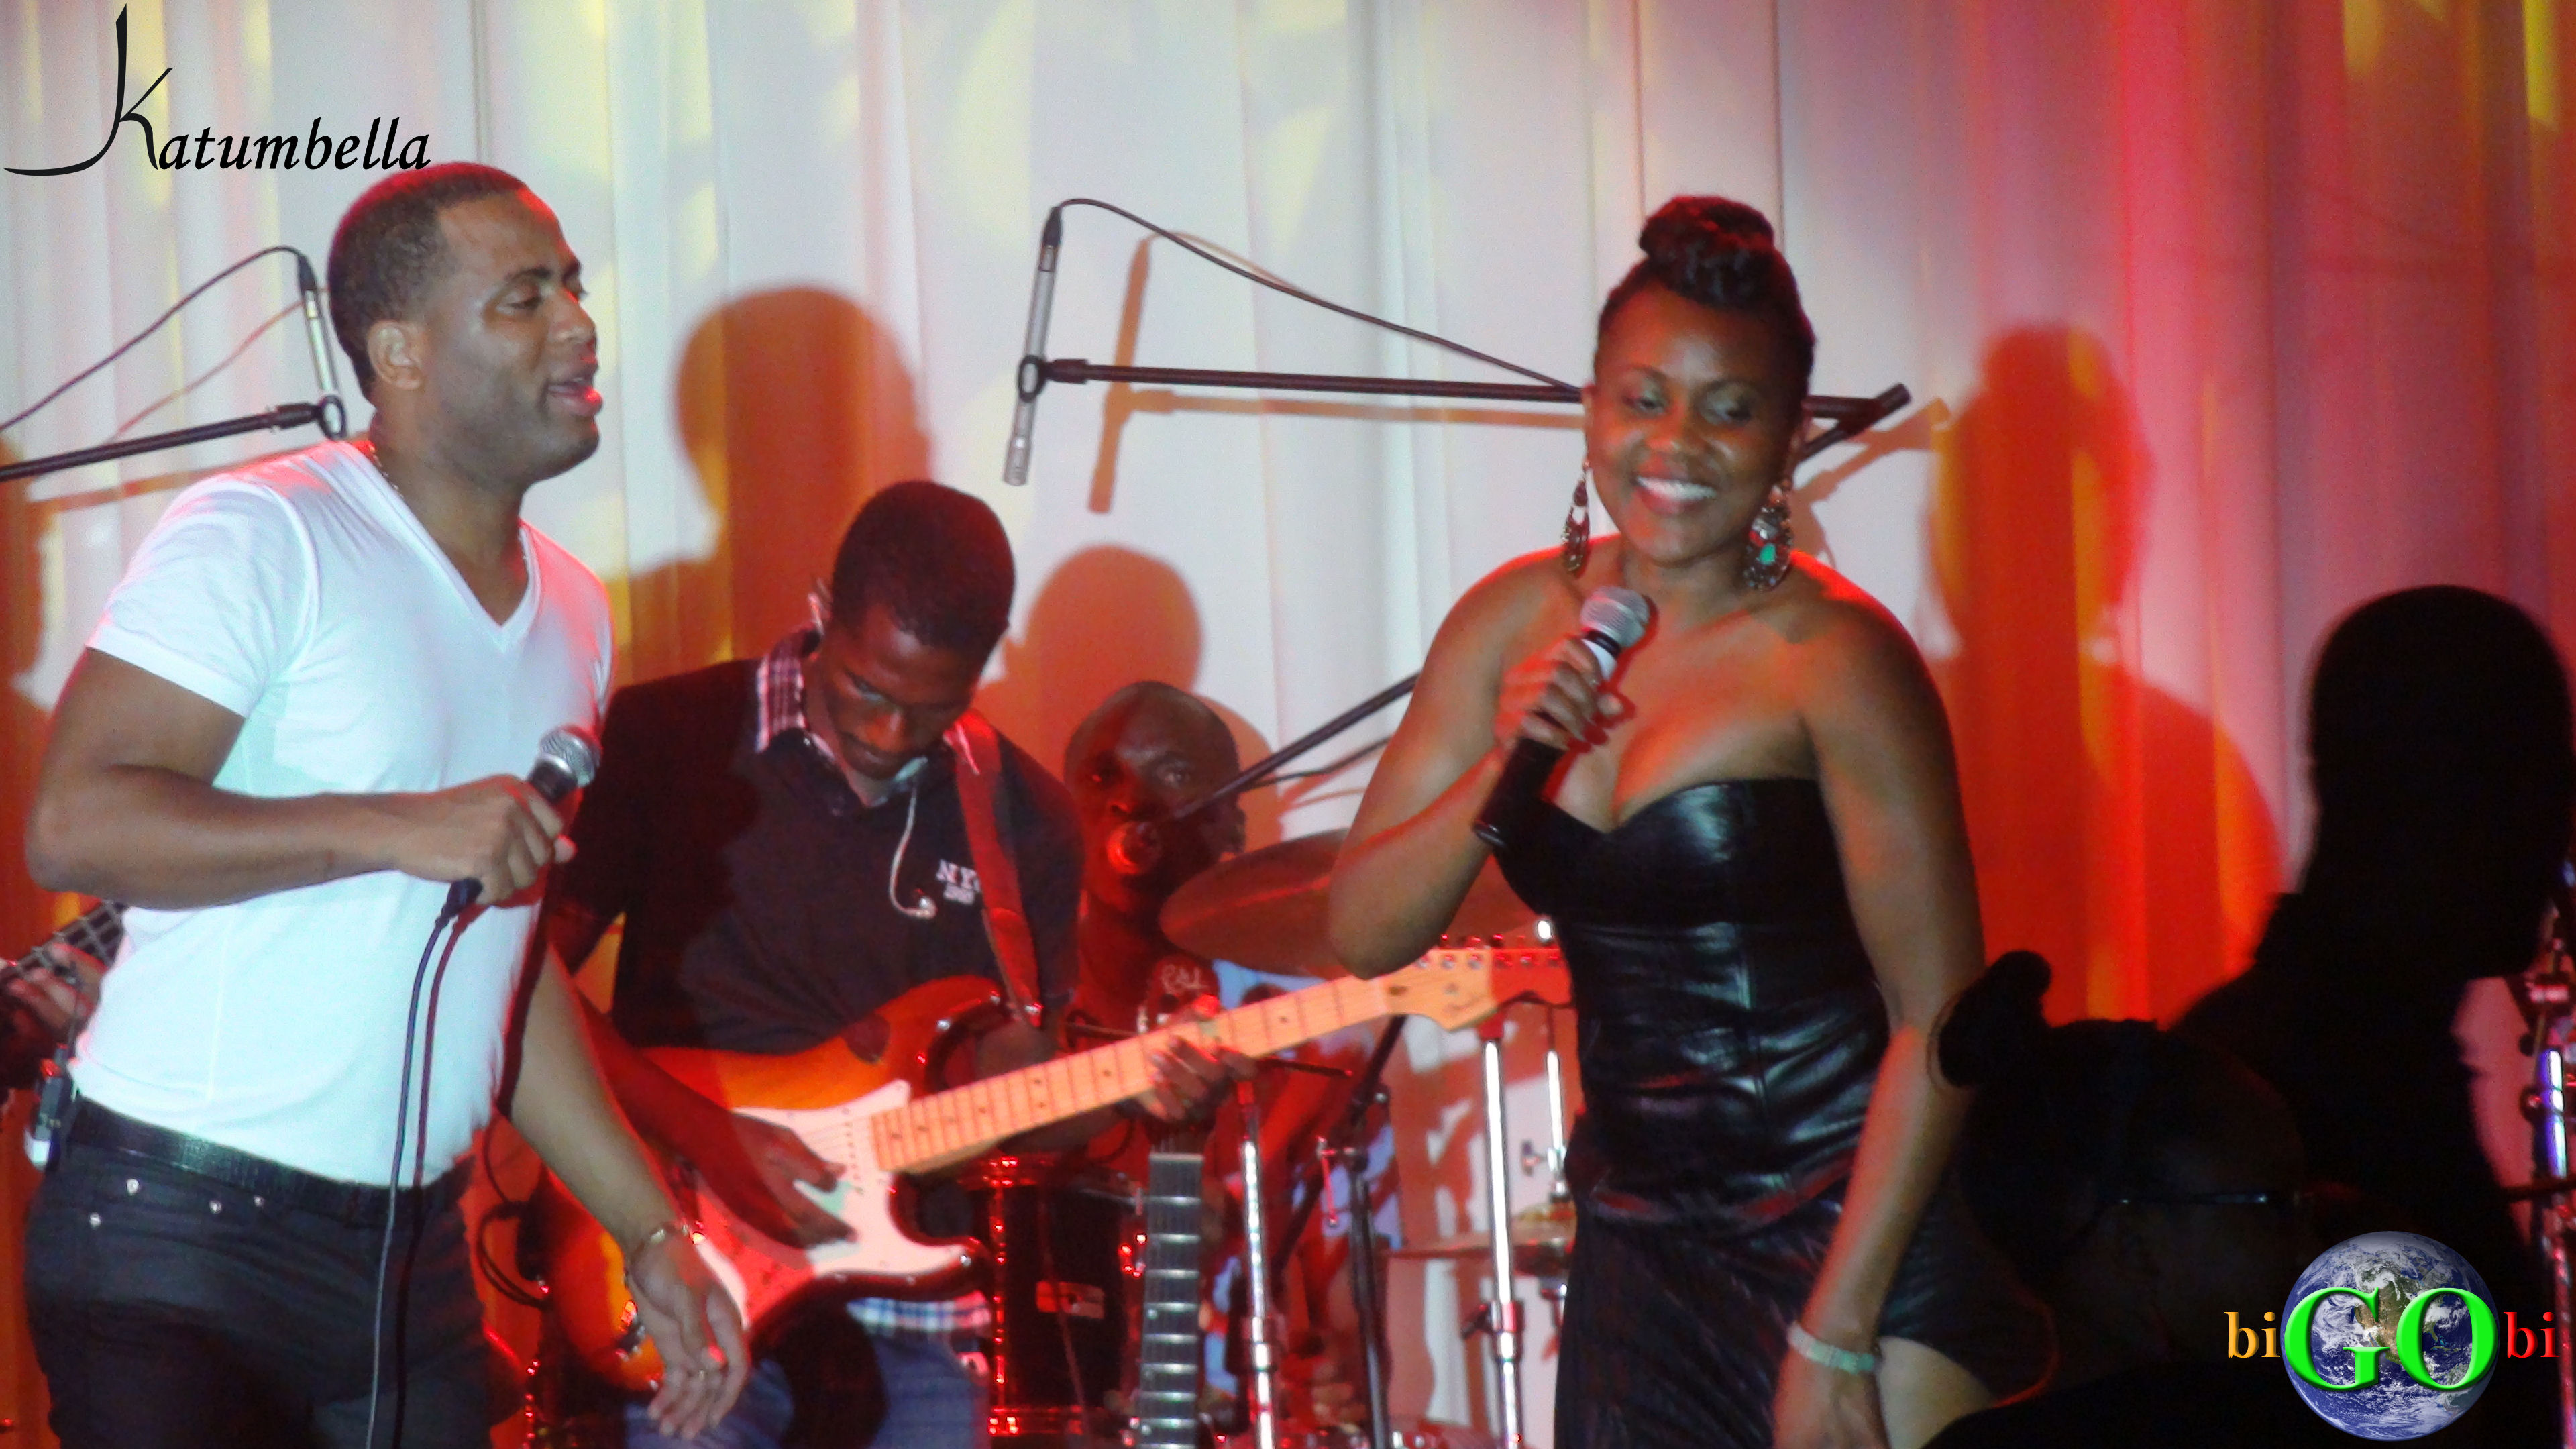 KATUMBELLA PERFORMS WITH YURI DA C.